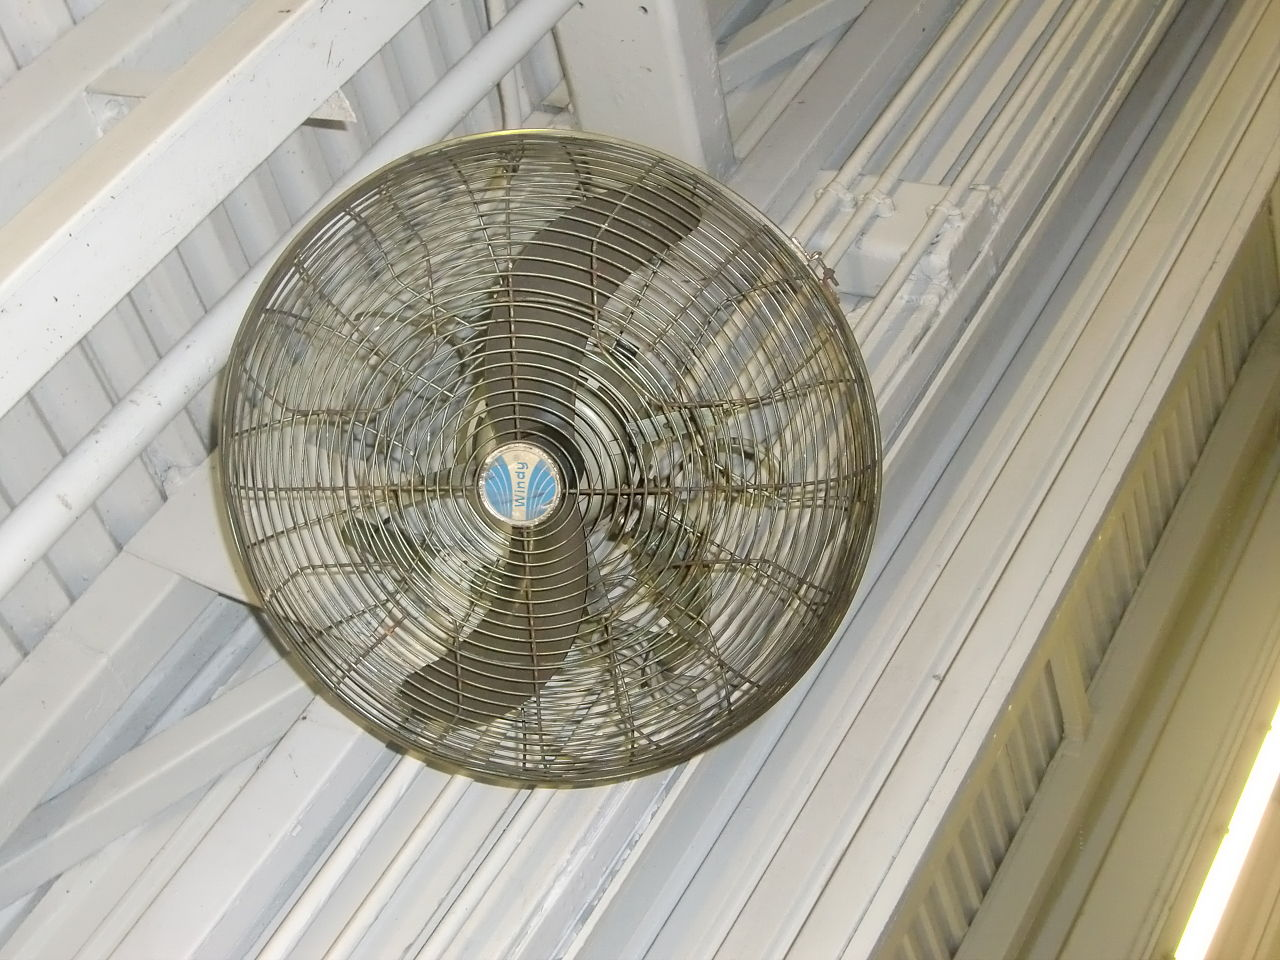 Types Of Industrial Fans : Bahrns industrial fans types and benefits